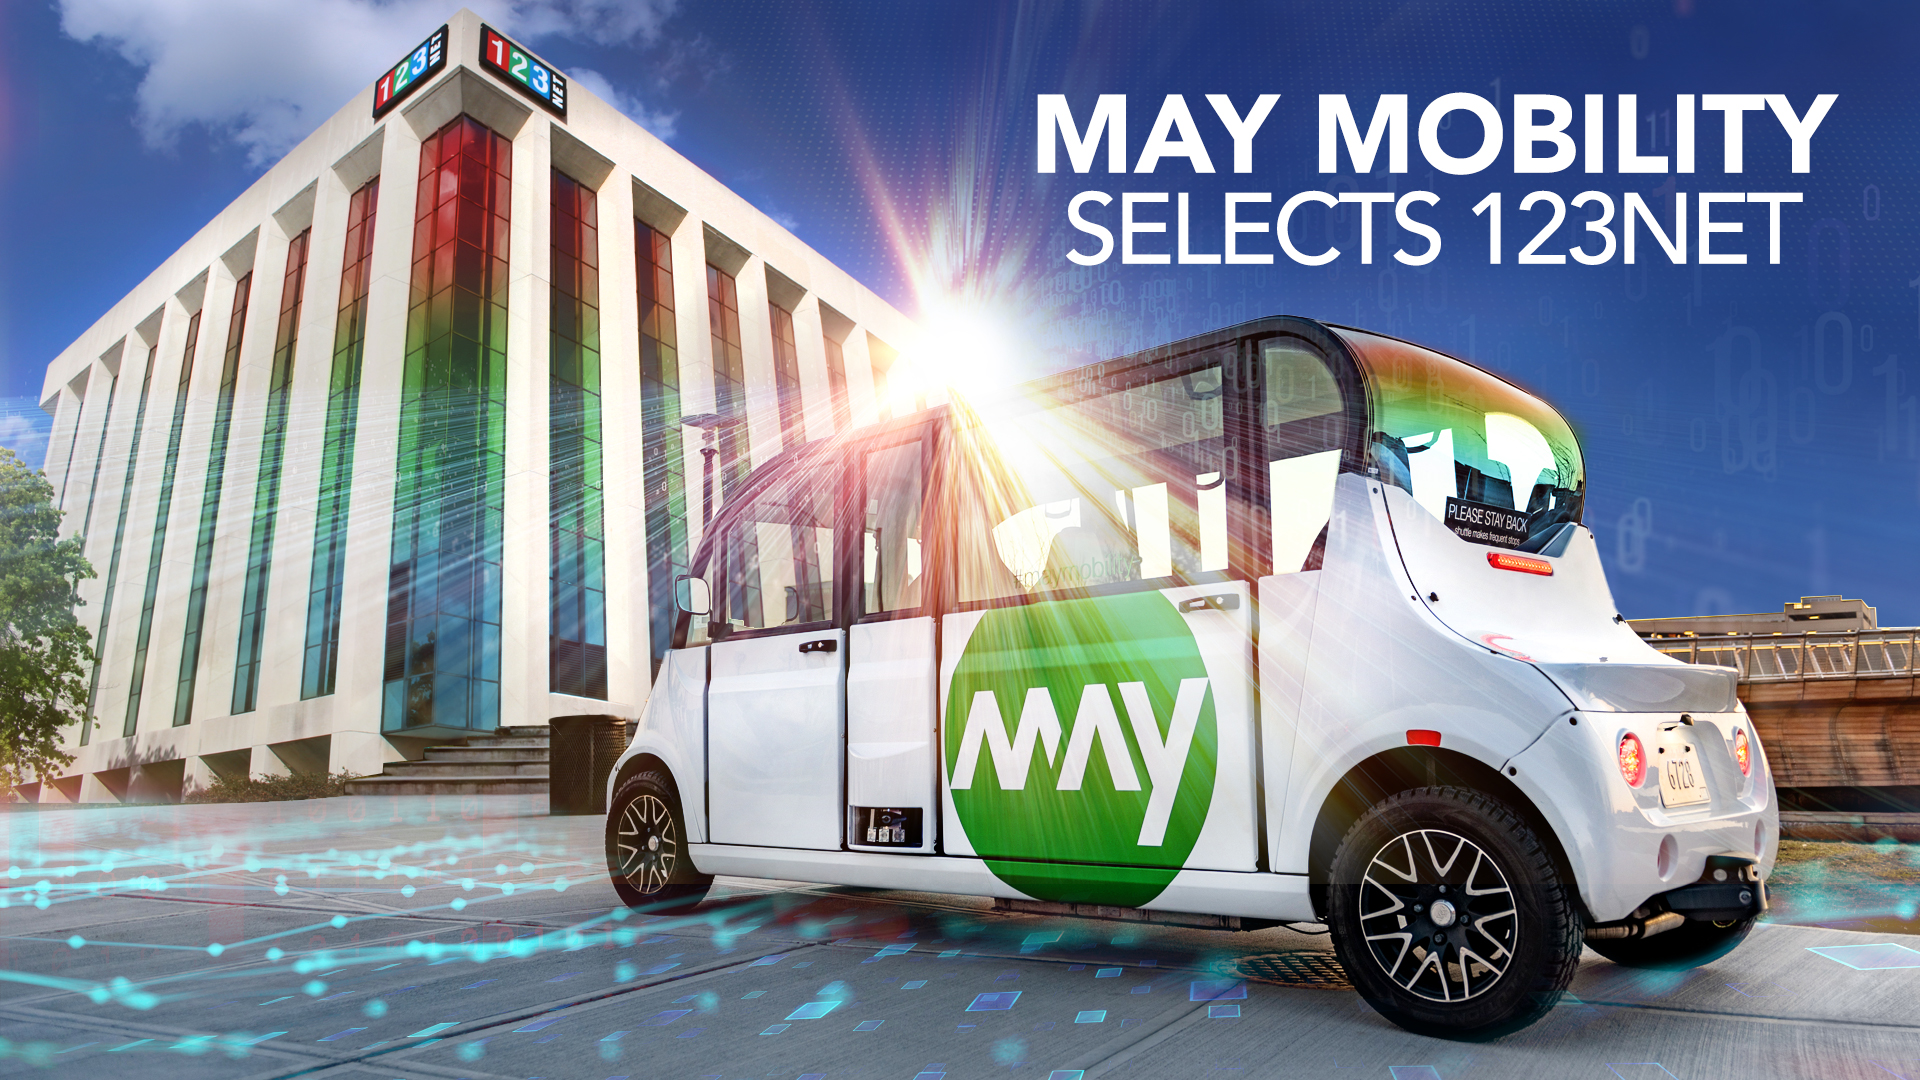 May Mobility Selects 123NET Data Center